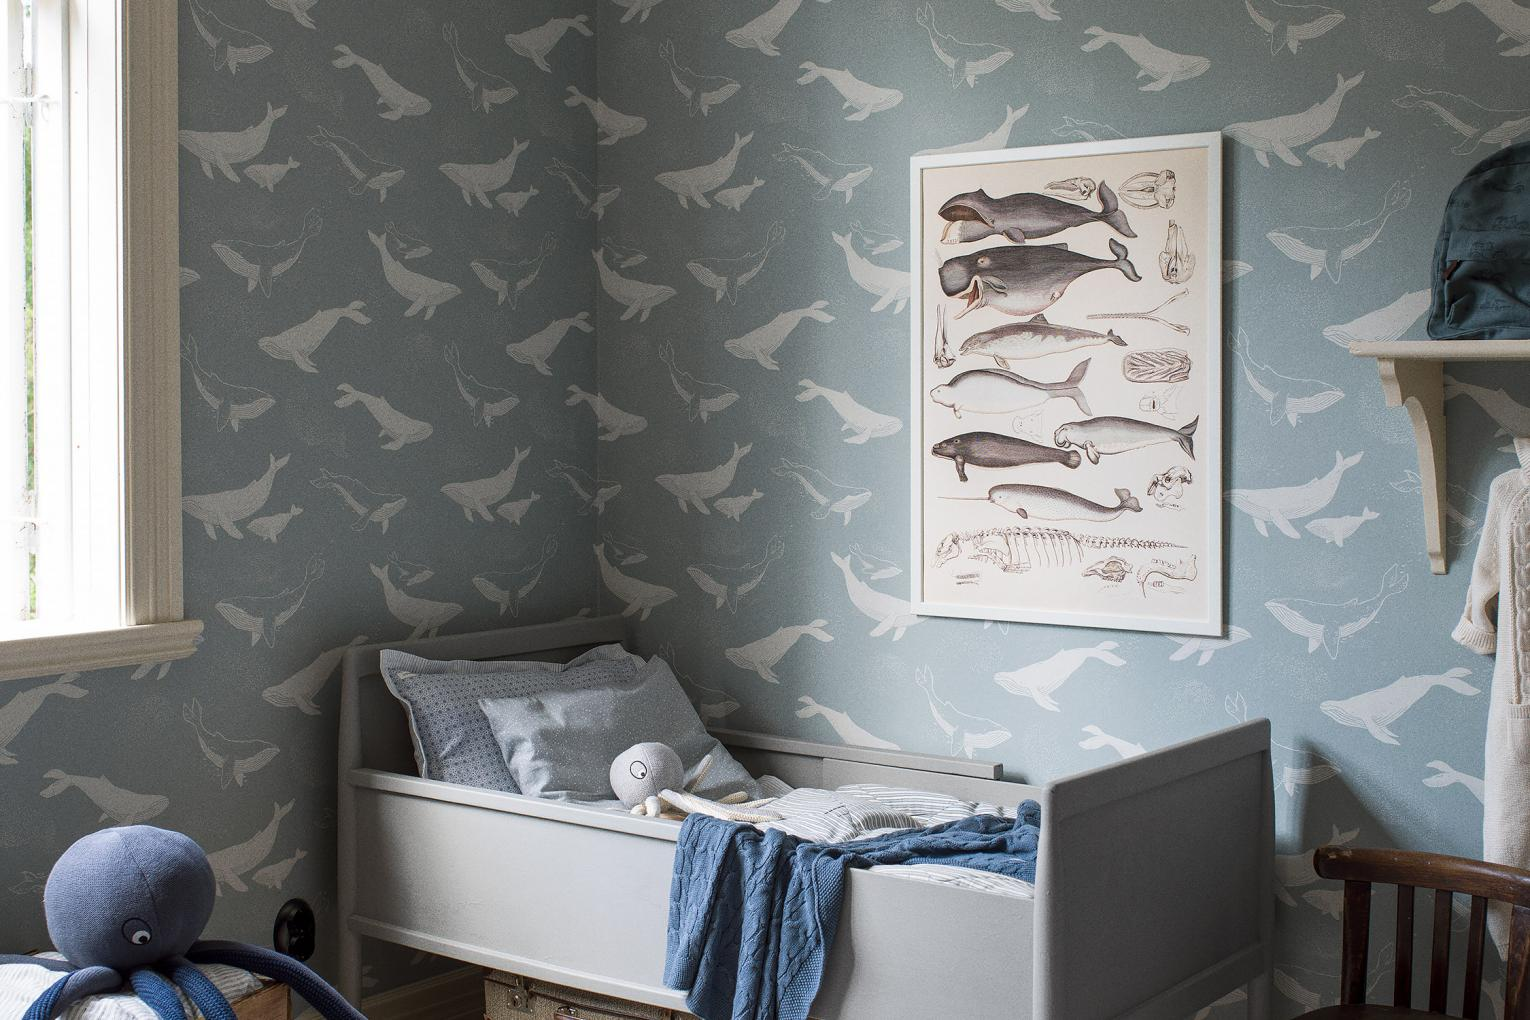 kidsroom-in-a-center-of-attention-11